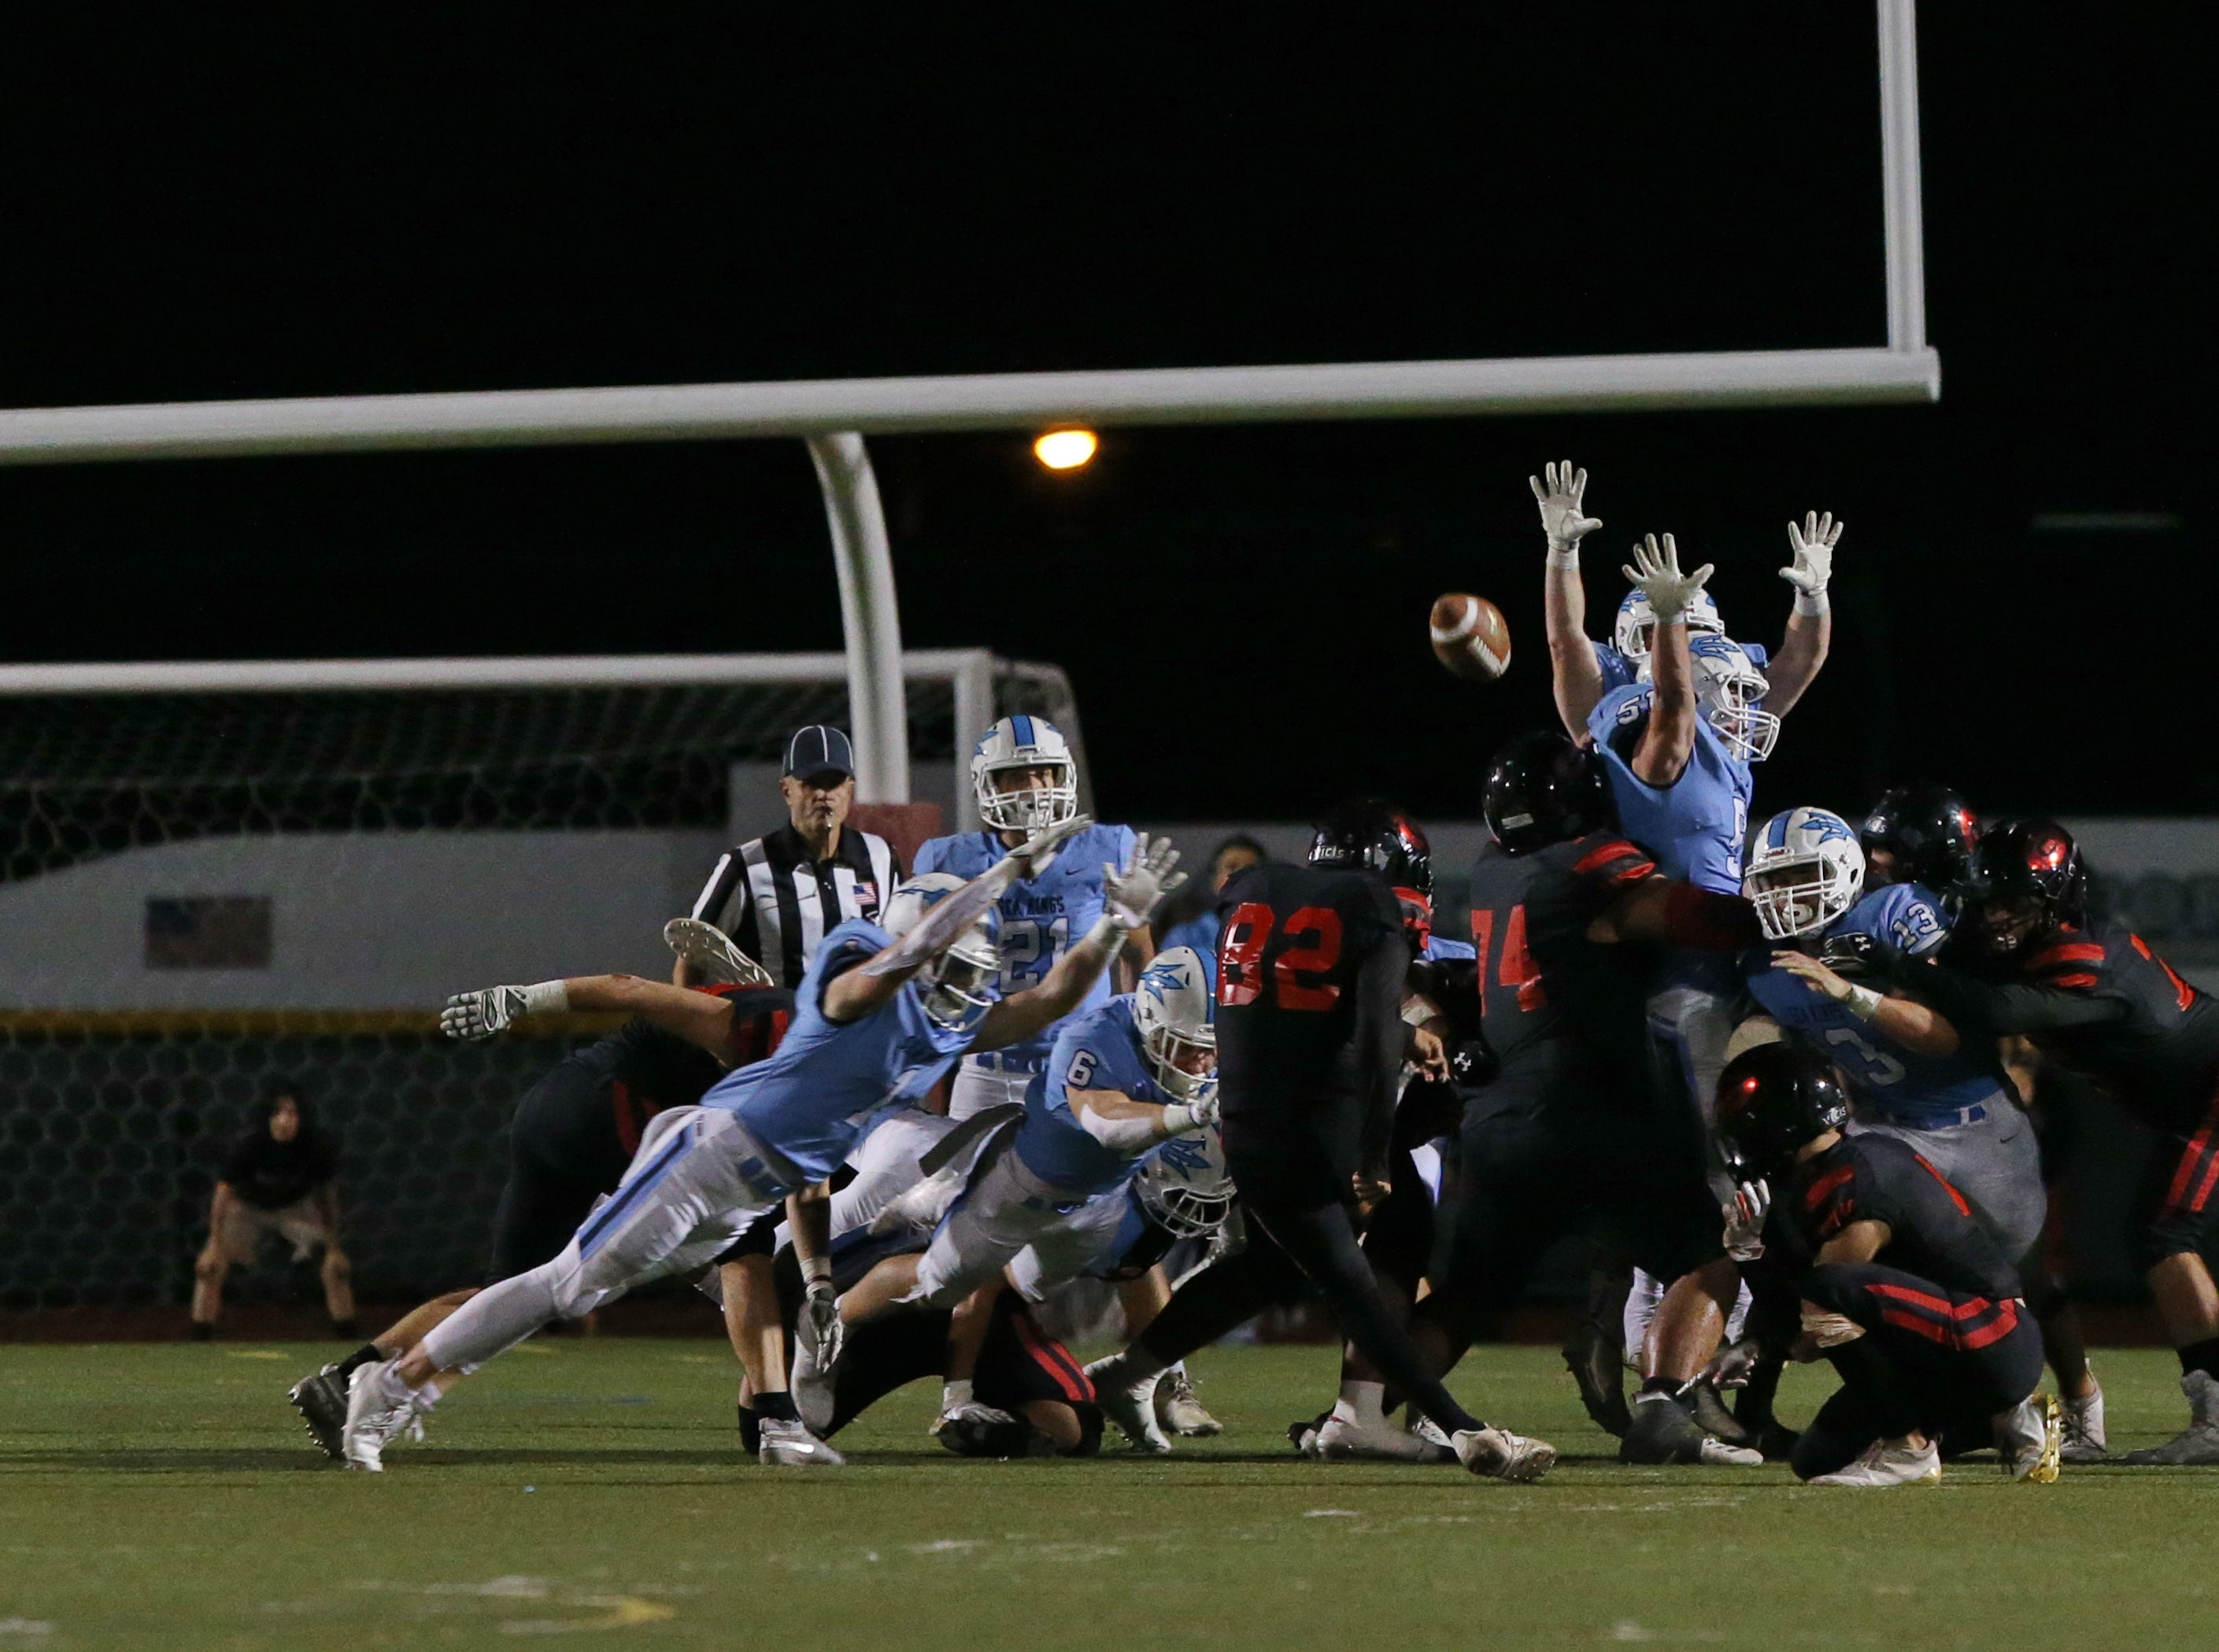 Kevin Aranda connects on a field goal to end the first half during Grace Brethren's 26-14 win over Corona del Mar in the CIF-SS Division 4 championship game Saturday night at Royal High.